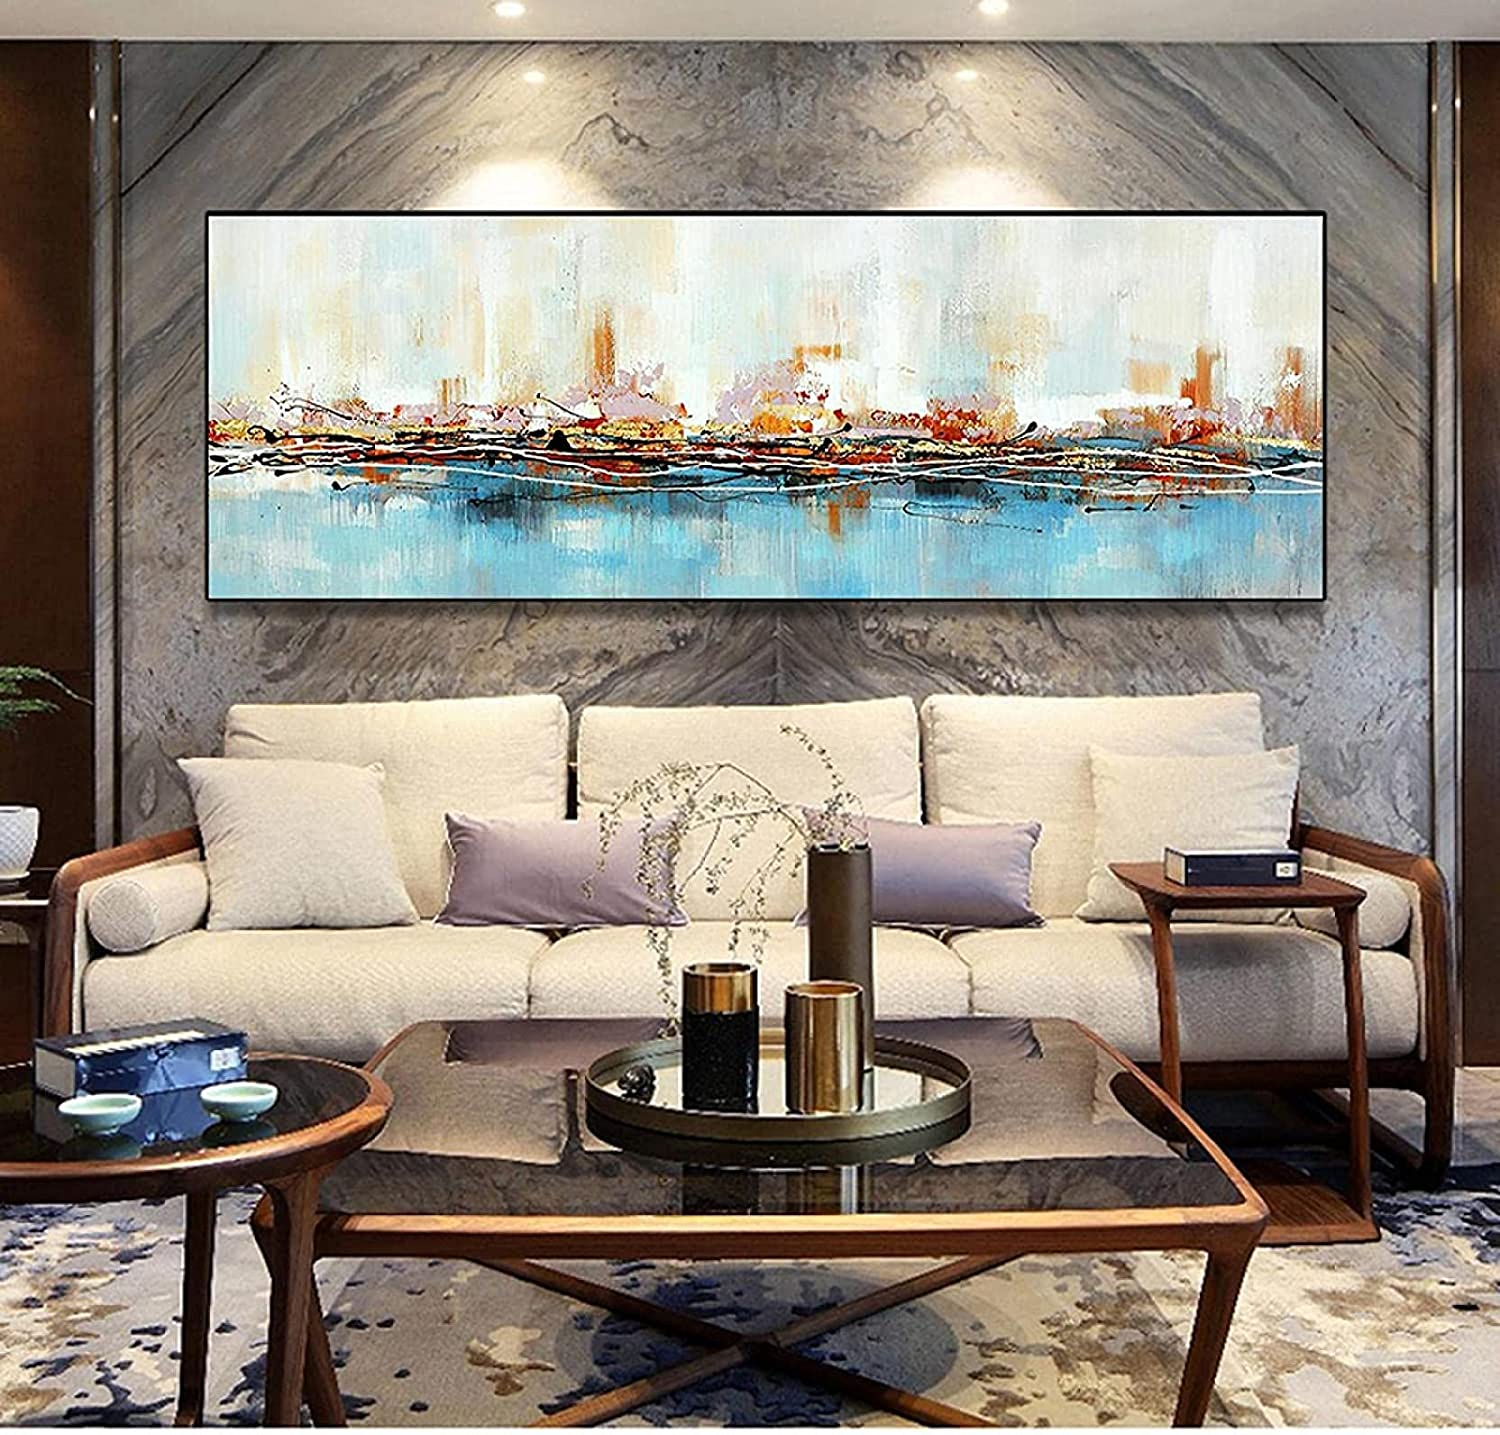 Max 84% OFF SXXRZA Art Poster 11.8x35.4in 30x90cm Frame No Modern New mail order Large Blu